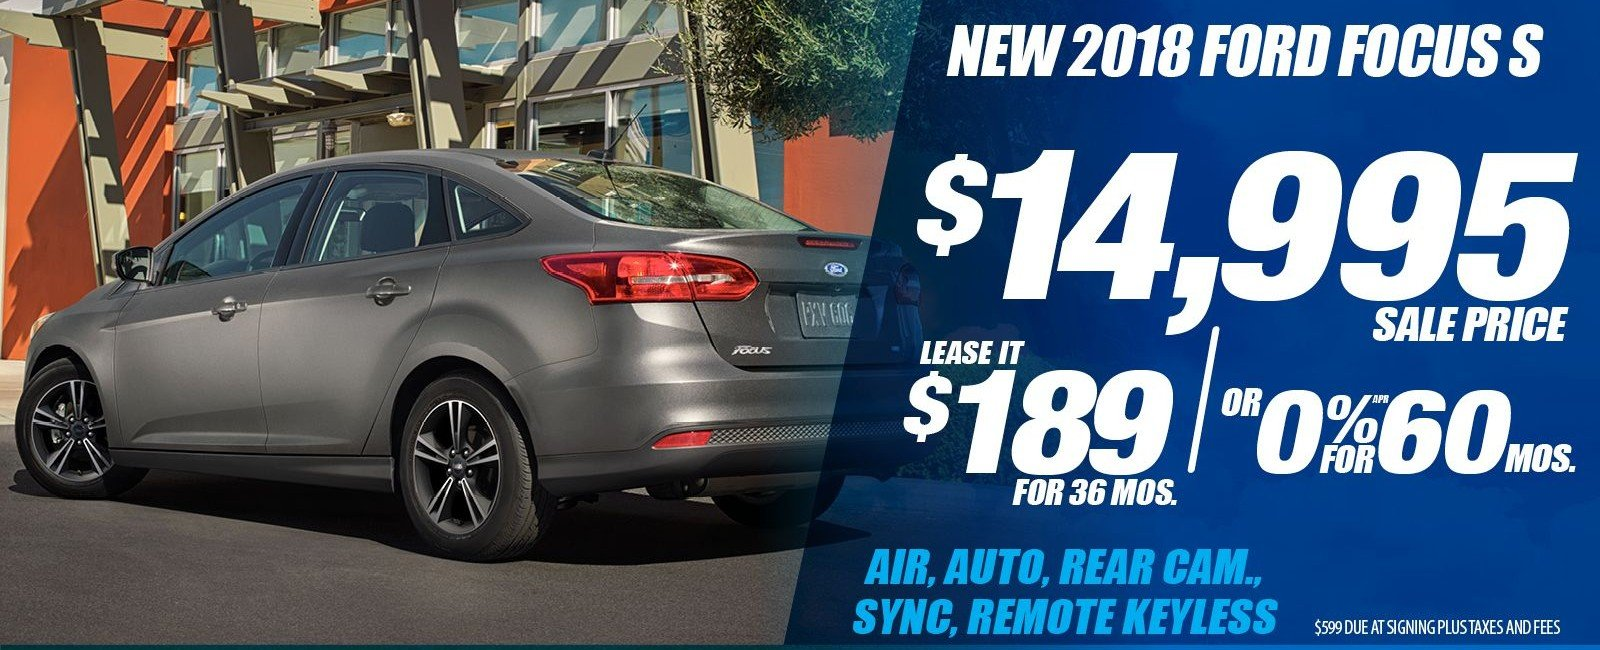 Special offer on 2018 Ford Focus NEW 2018 FORD FOCUS S SPECIAL IN DALLAS, TX!